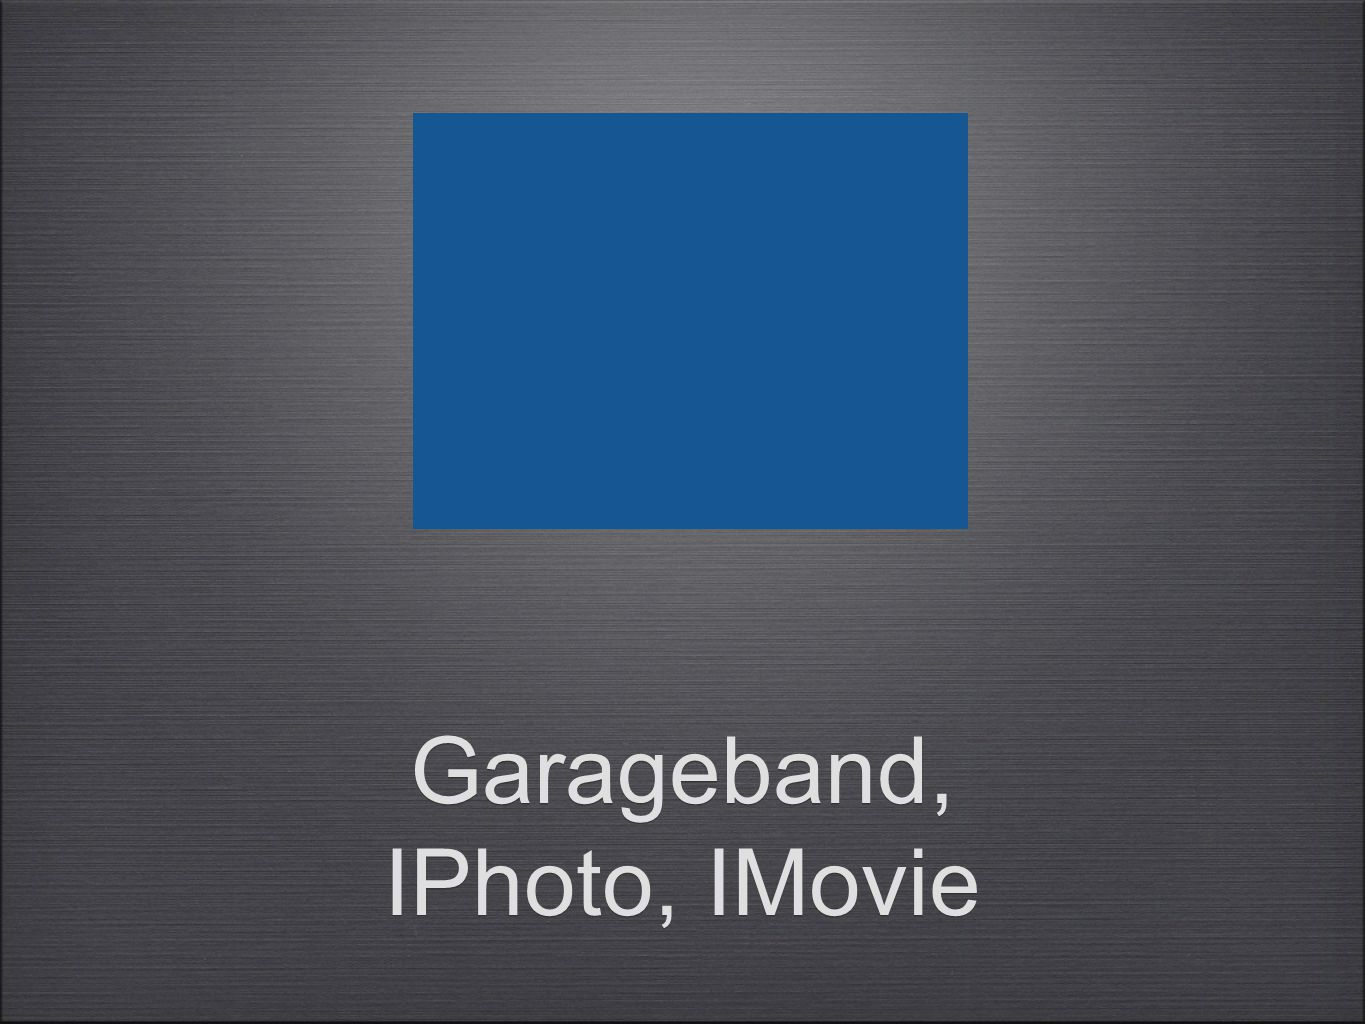 Garageband, IPhoto, IMovie